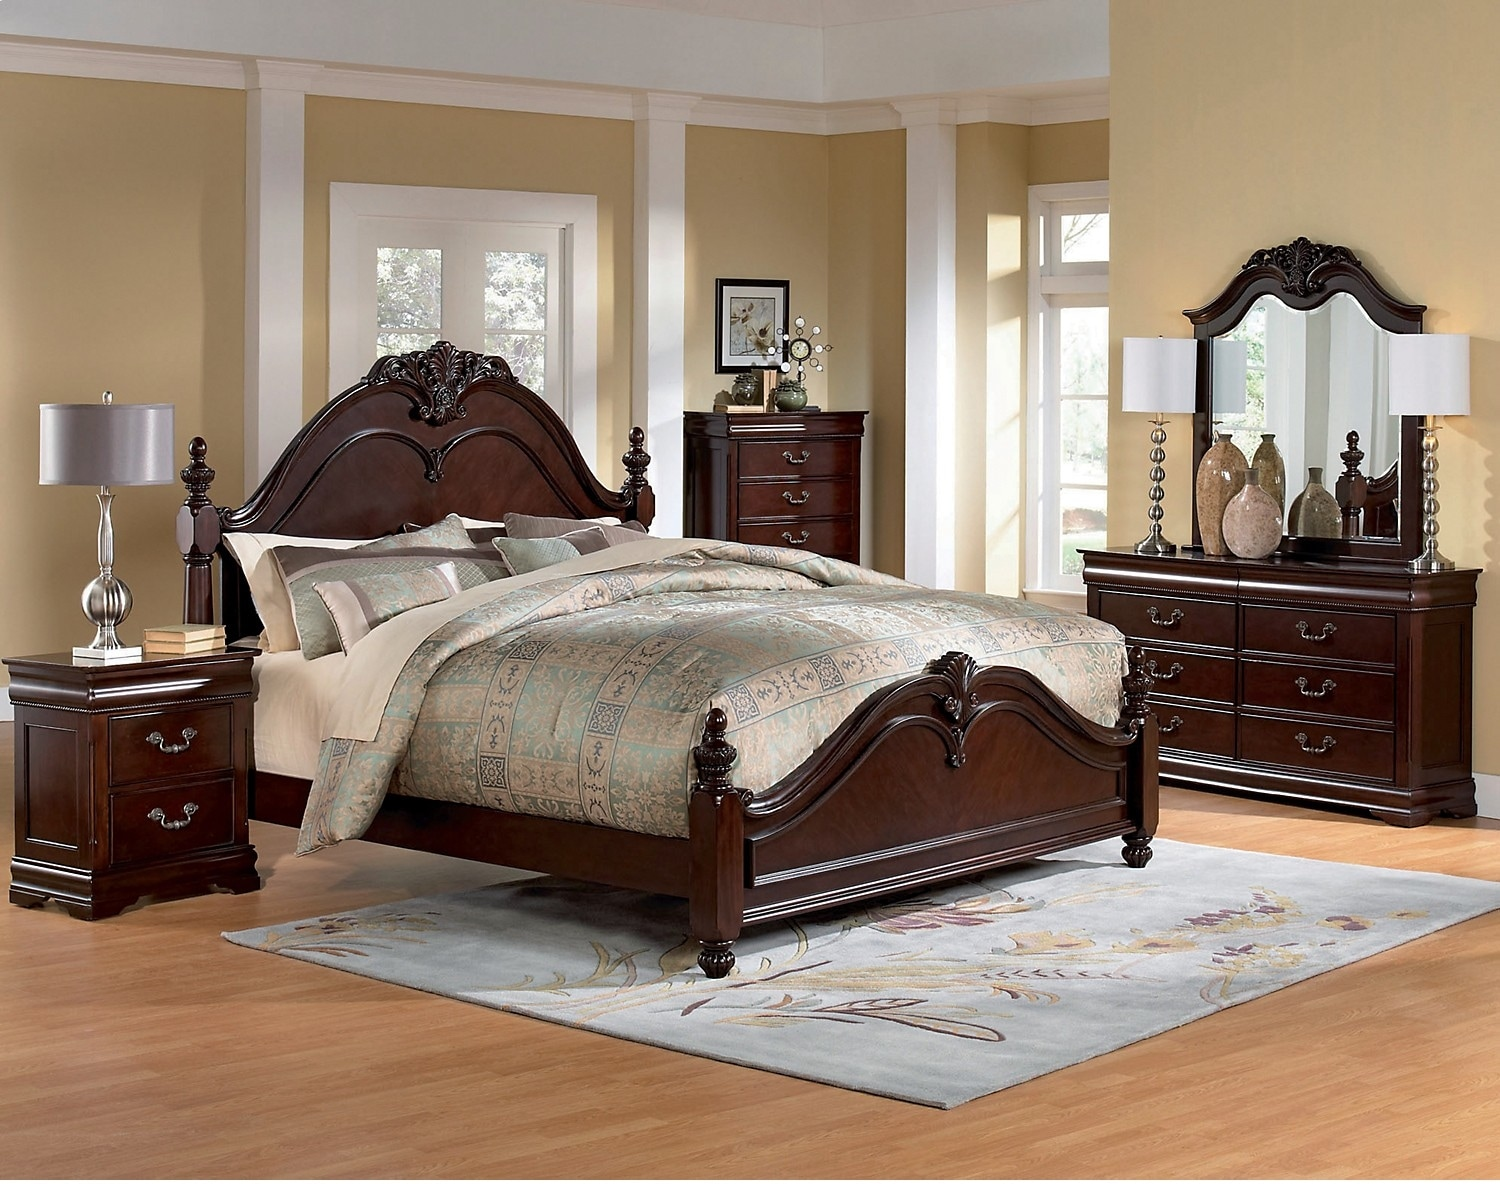 Westchester 6 piece queen bedroom set the brick for Bedroom furniture